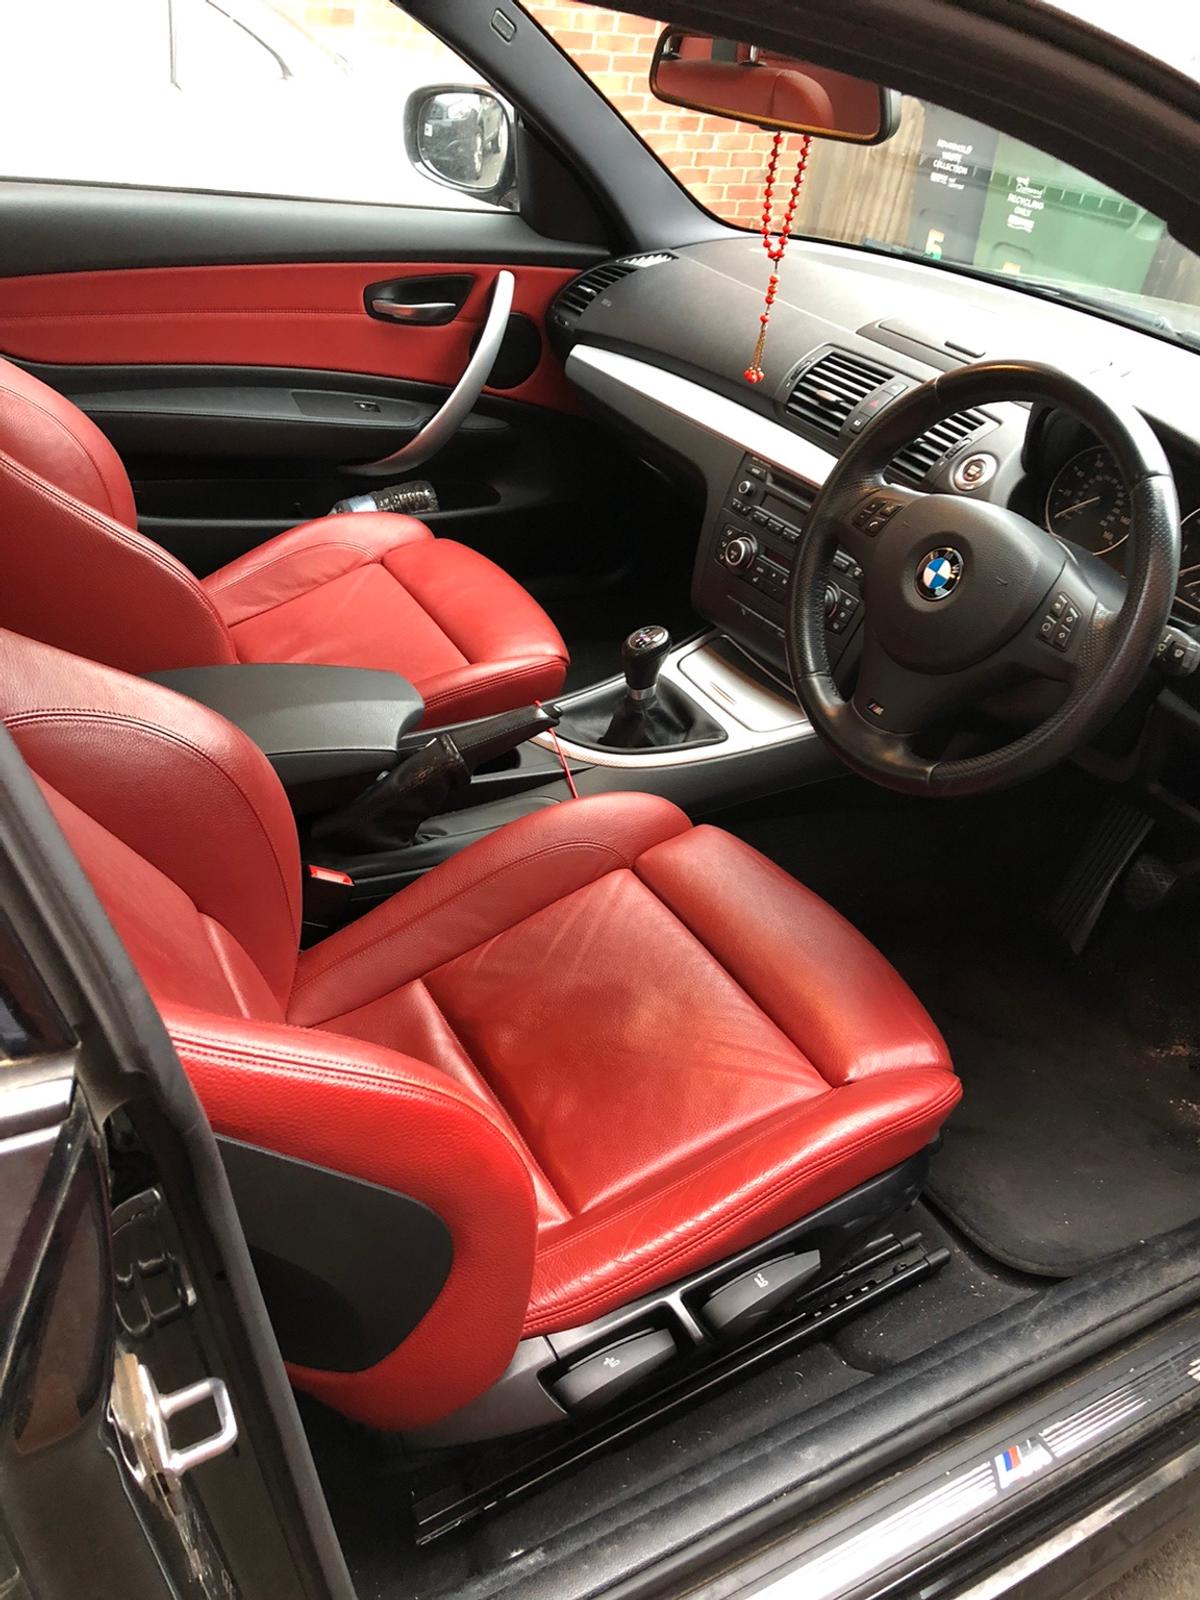 Bmw 1 Series Coupe In Le5 Charnwood For 6 200 00 For Sale Shpock